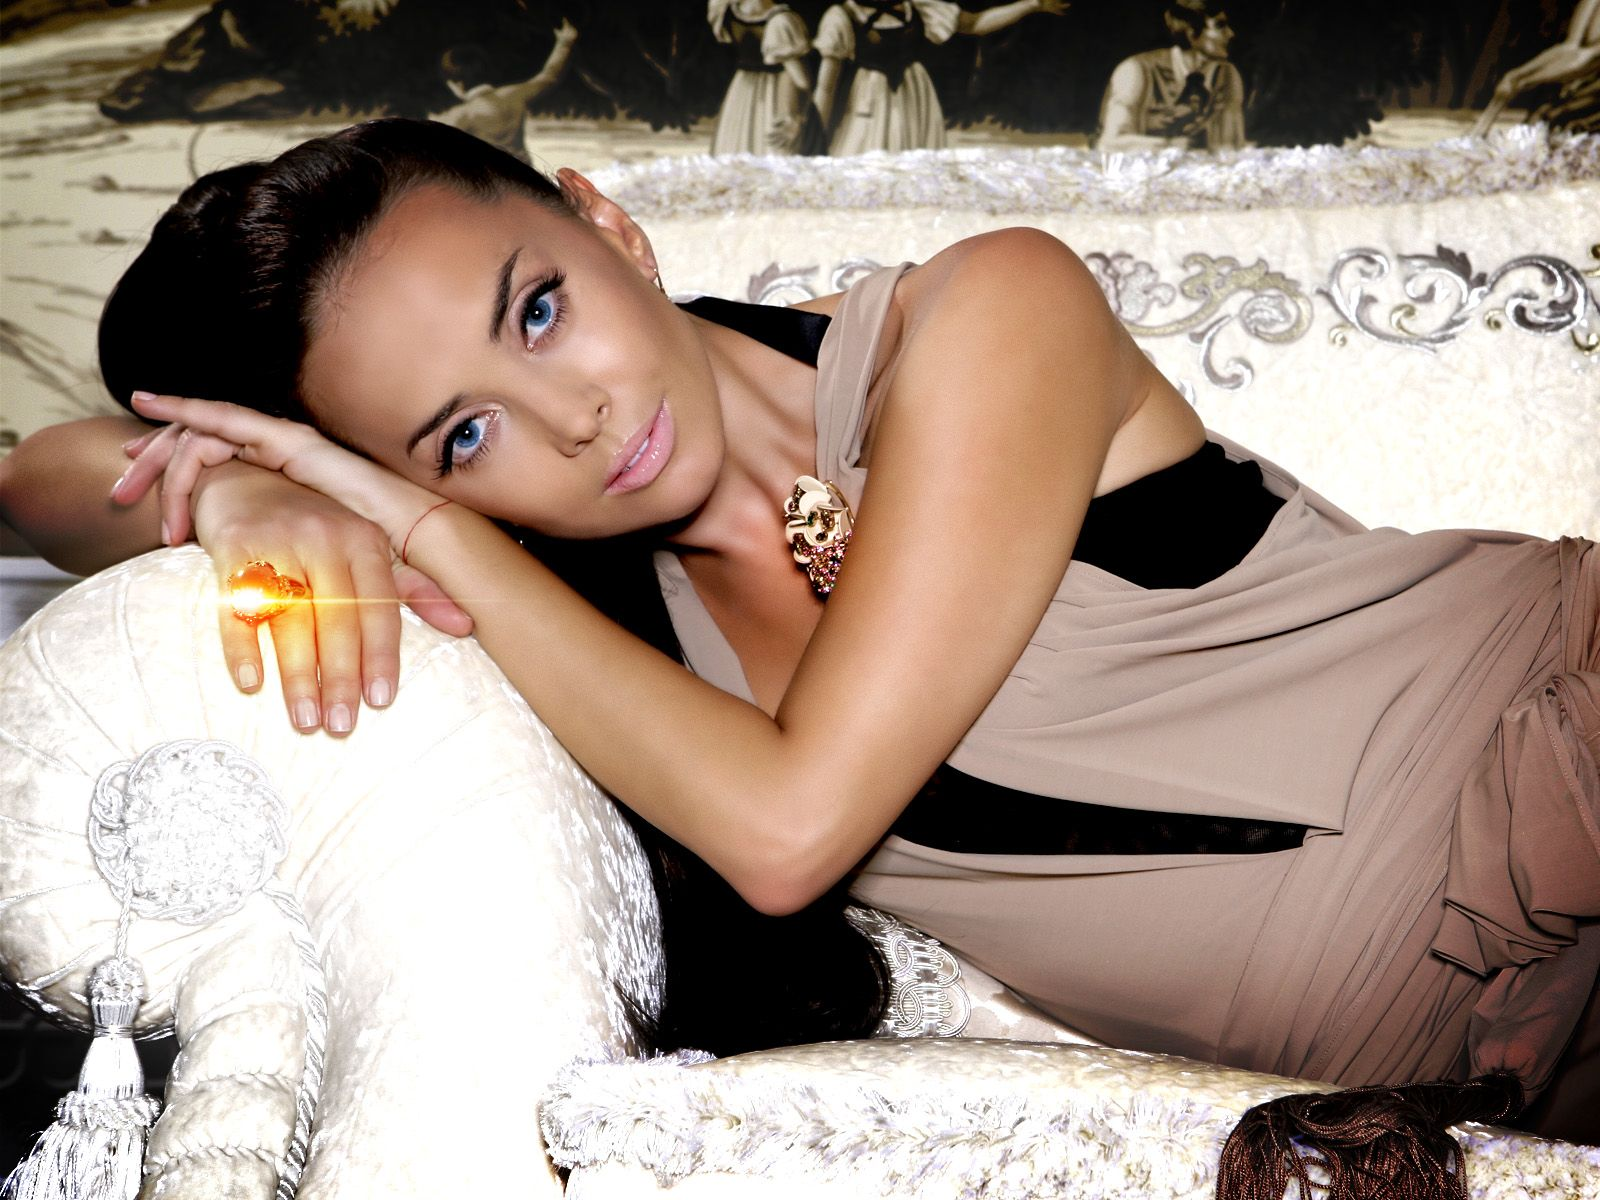 Zhanna Friske had a twin brother